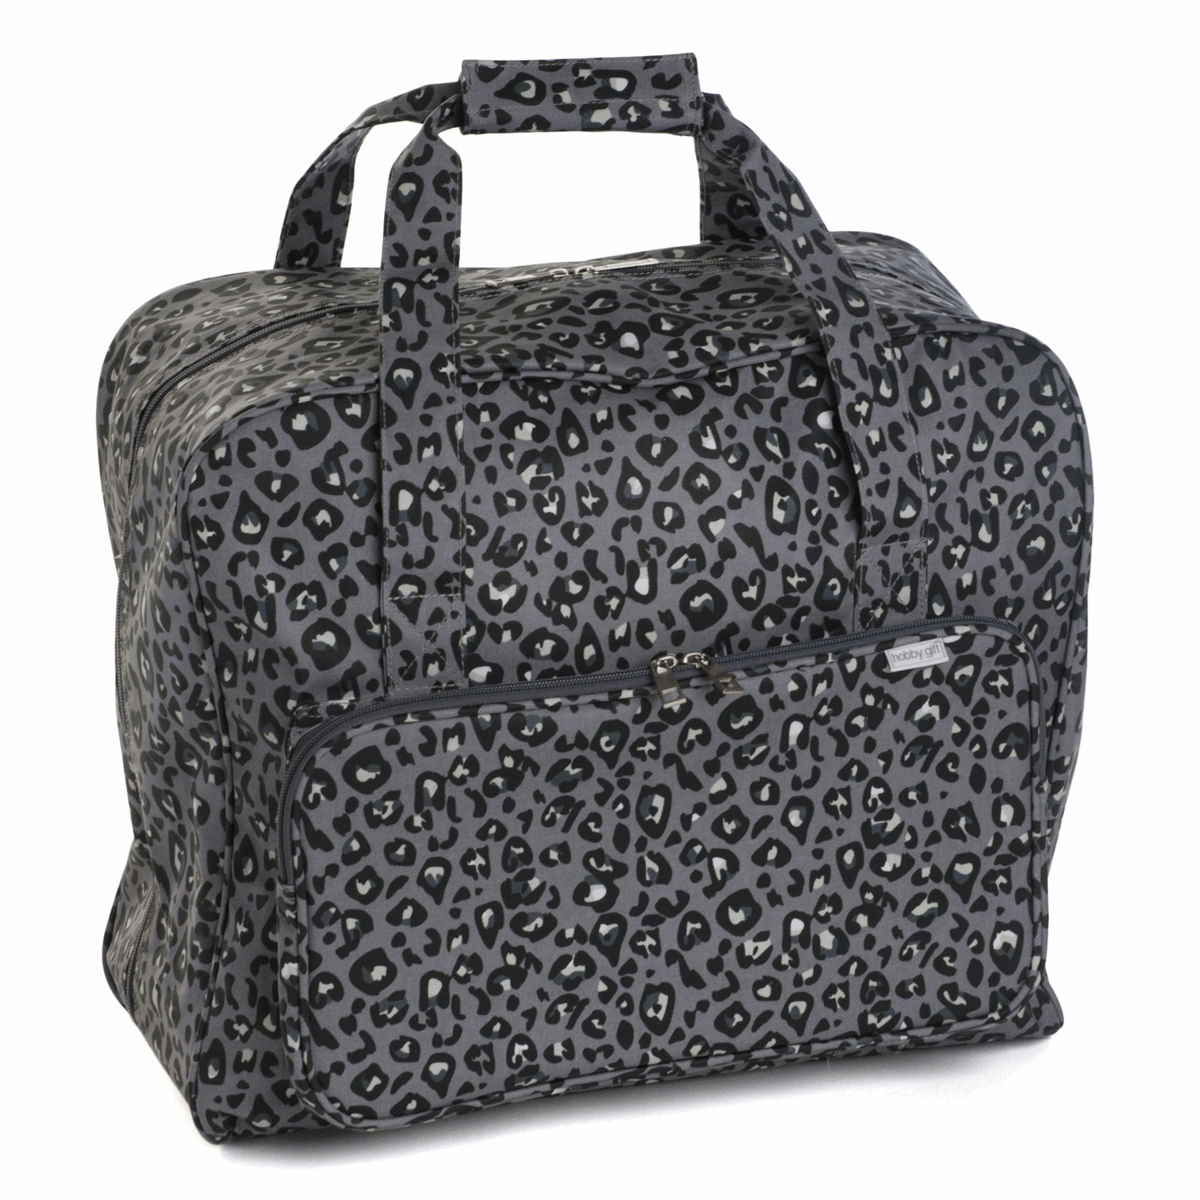 Leopard Sewing Machine Bag - Grey (Matt PVC)